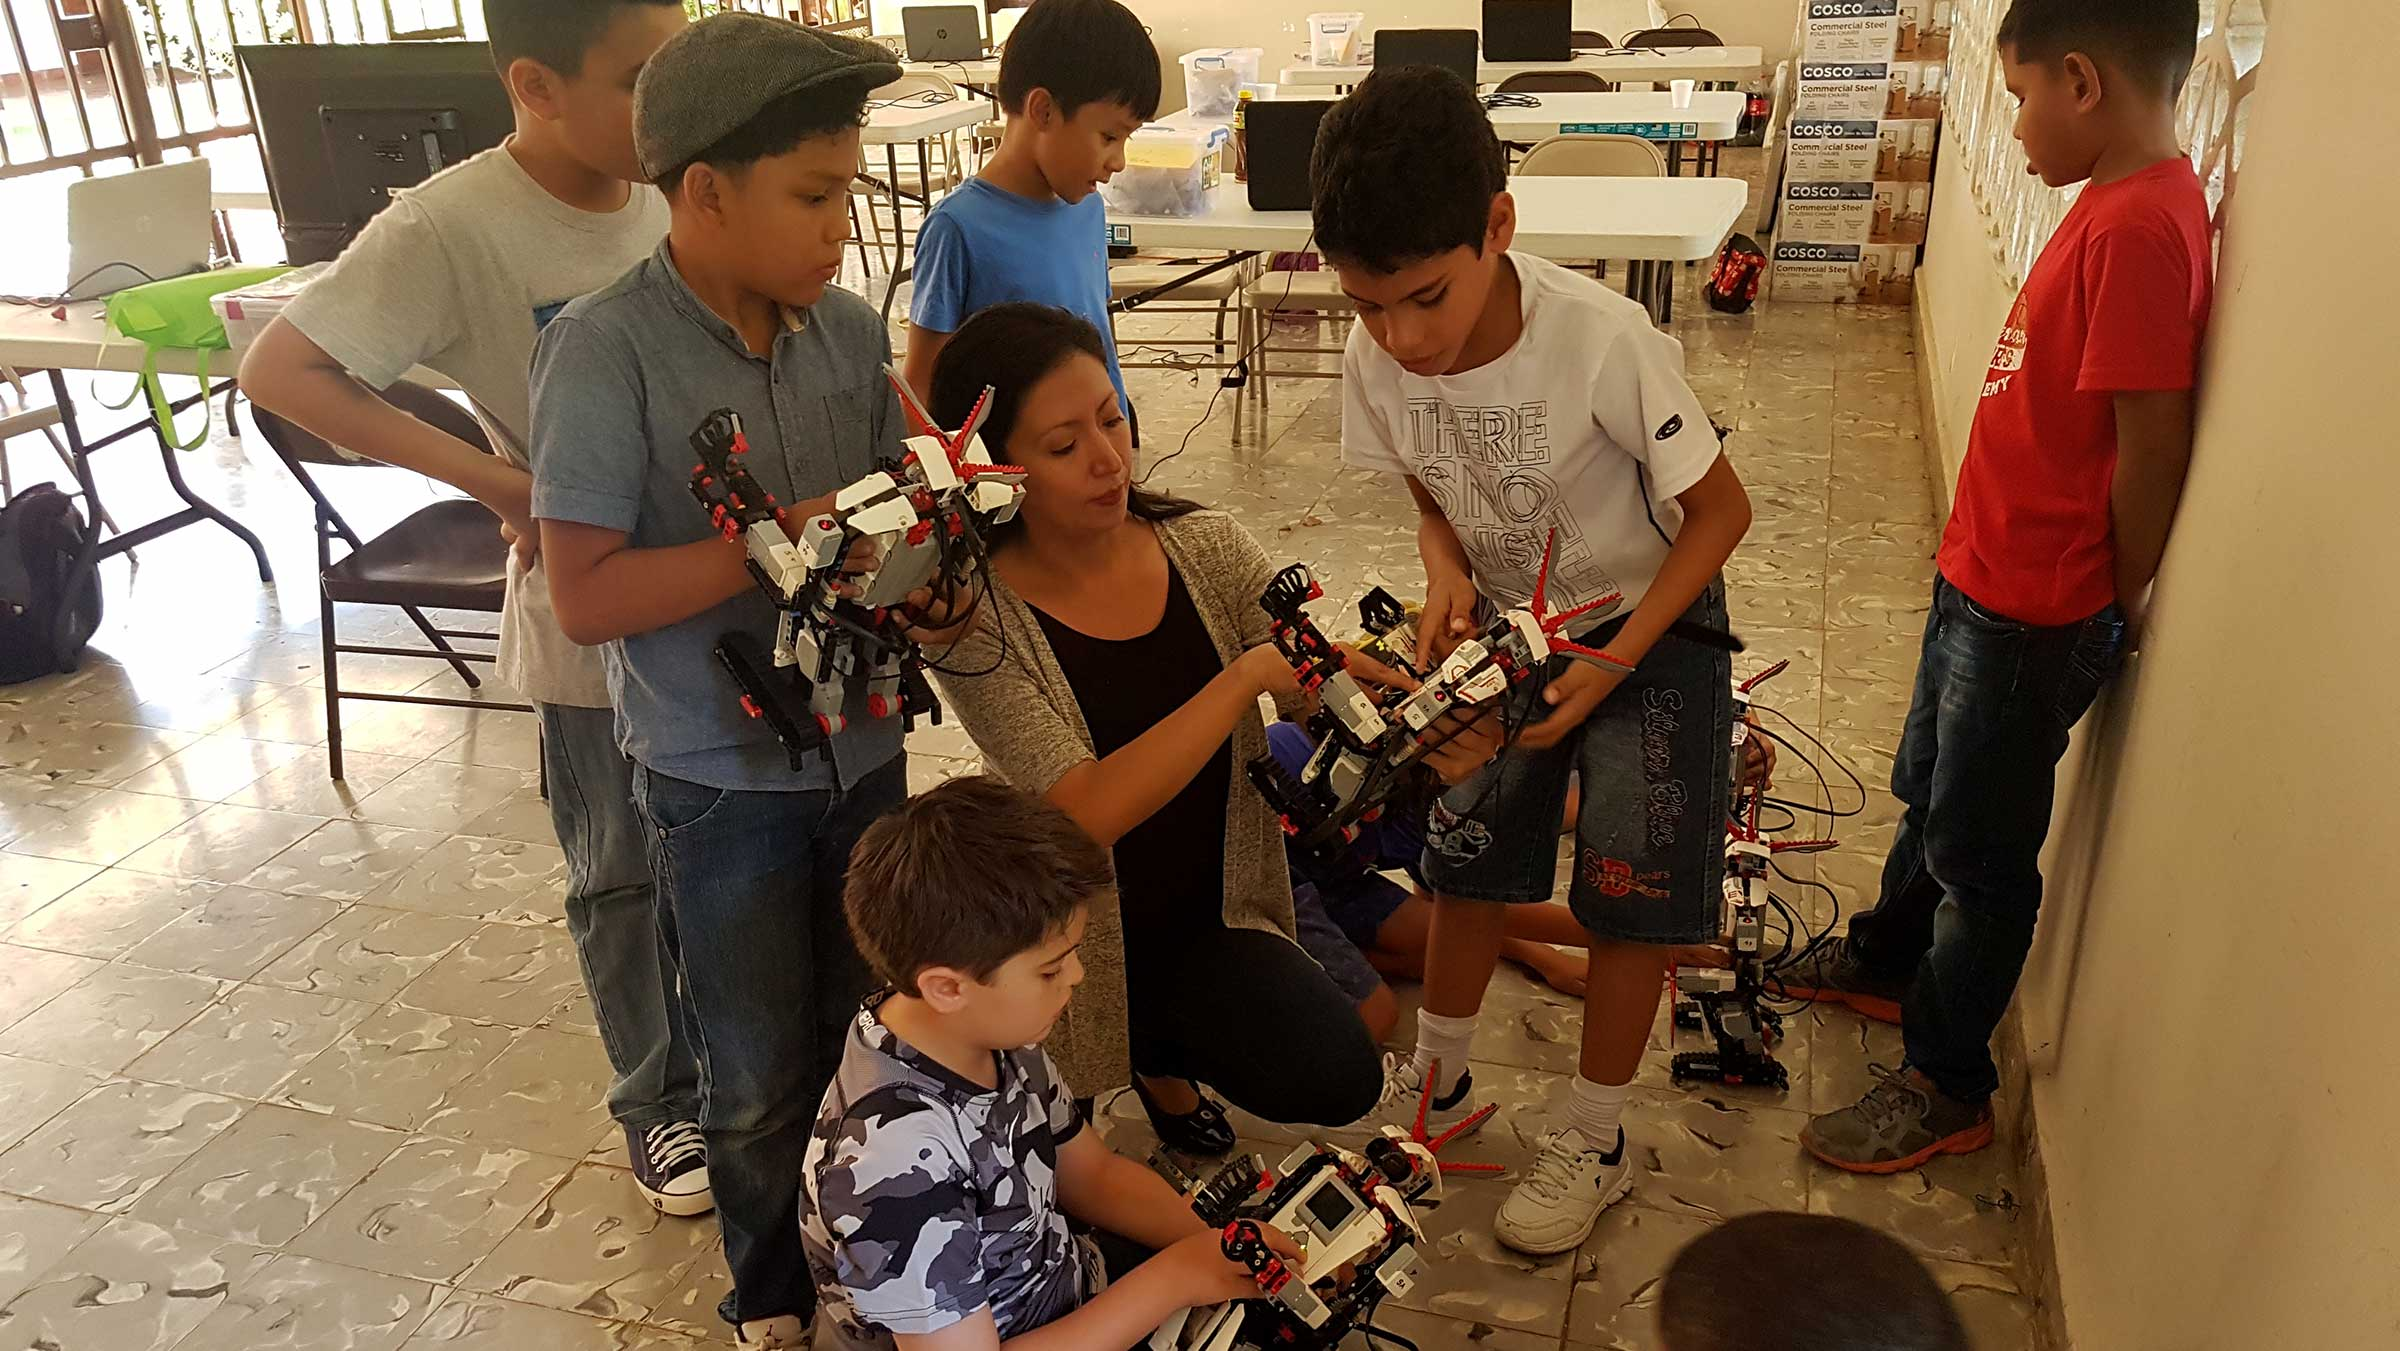 Victoria Serrano is shown working with a group of Panamanian students using LEGO MINDSTORMS robotic kits.